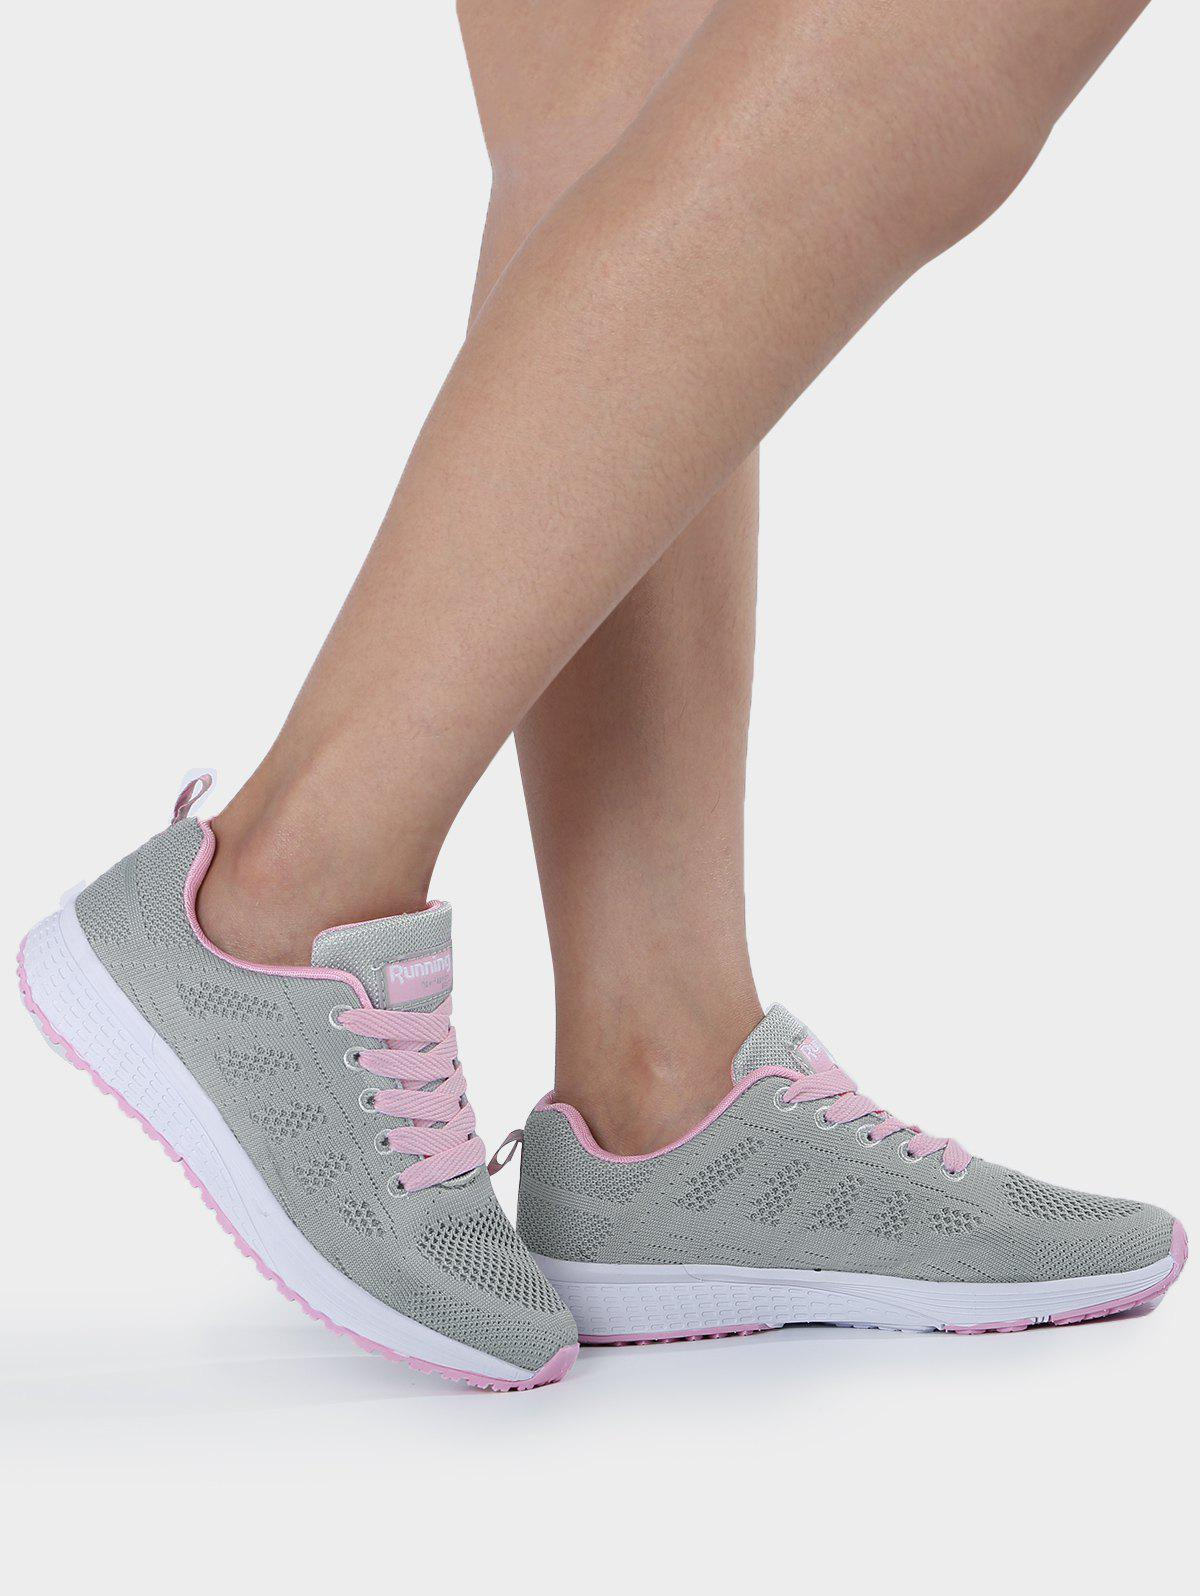 Mesh Eyelet Embroidery Athletic Shoes - PINK/GREY 37